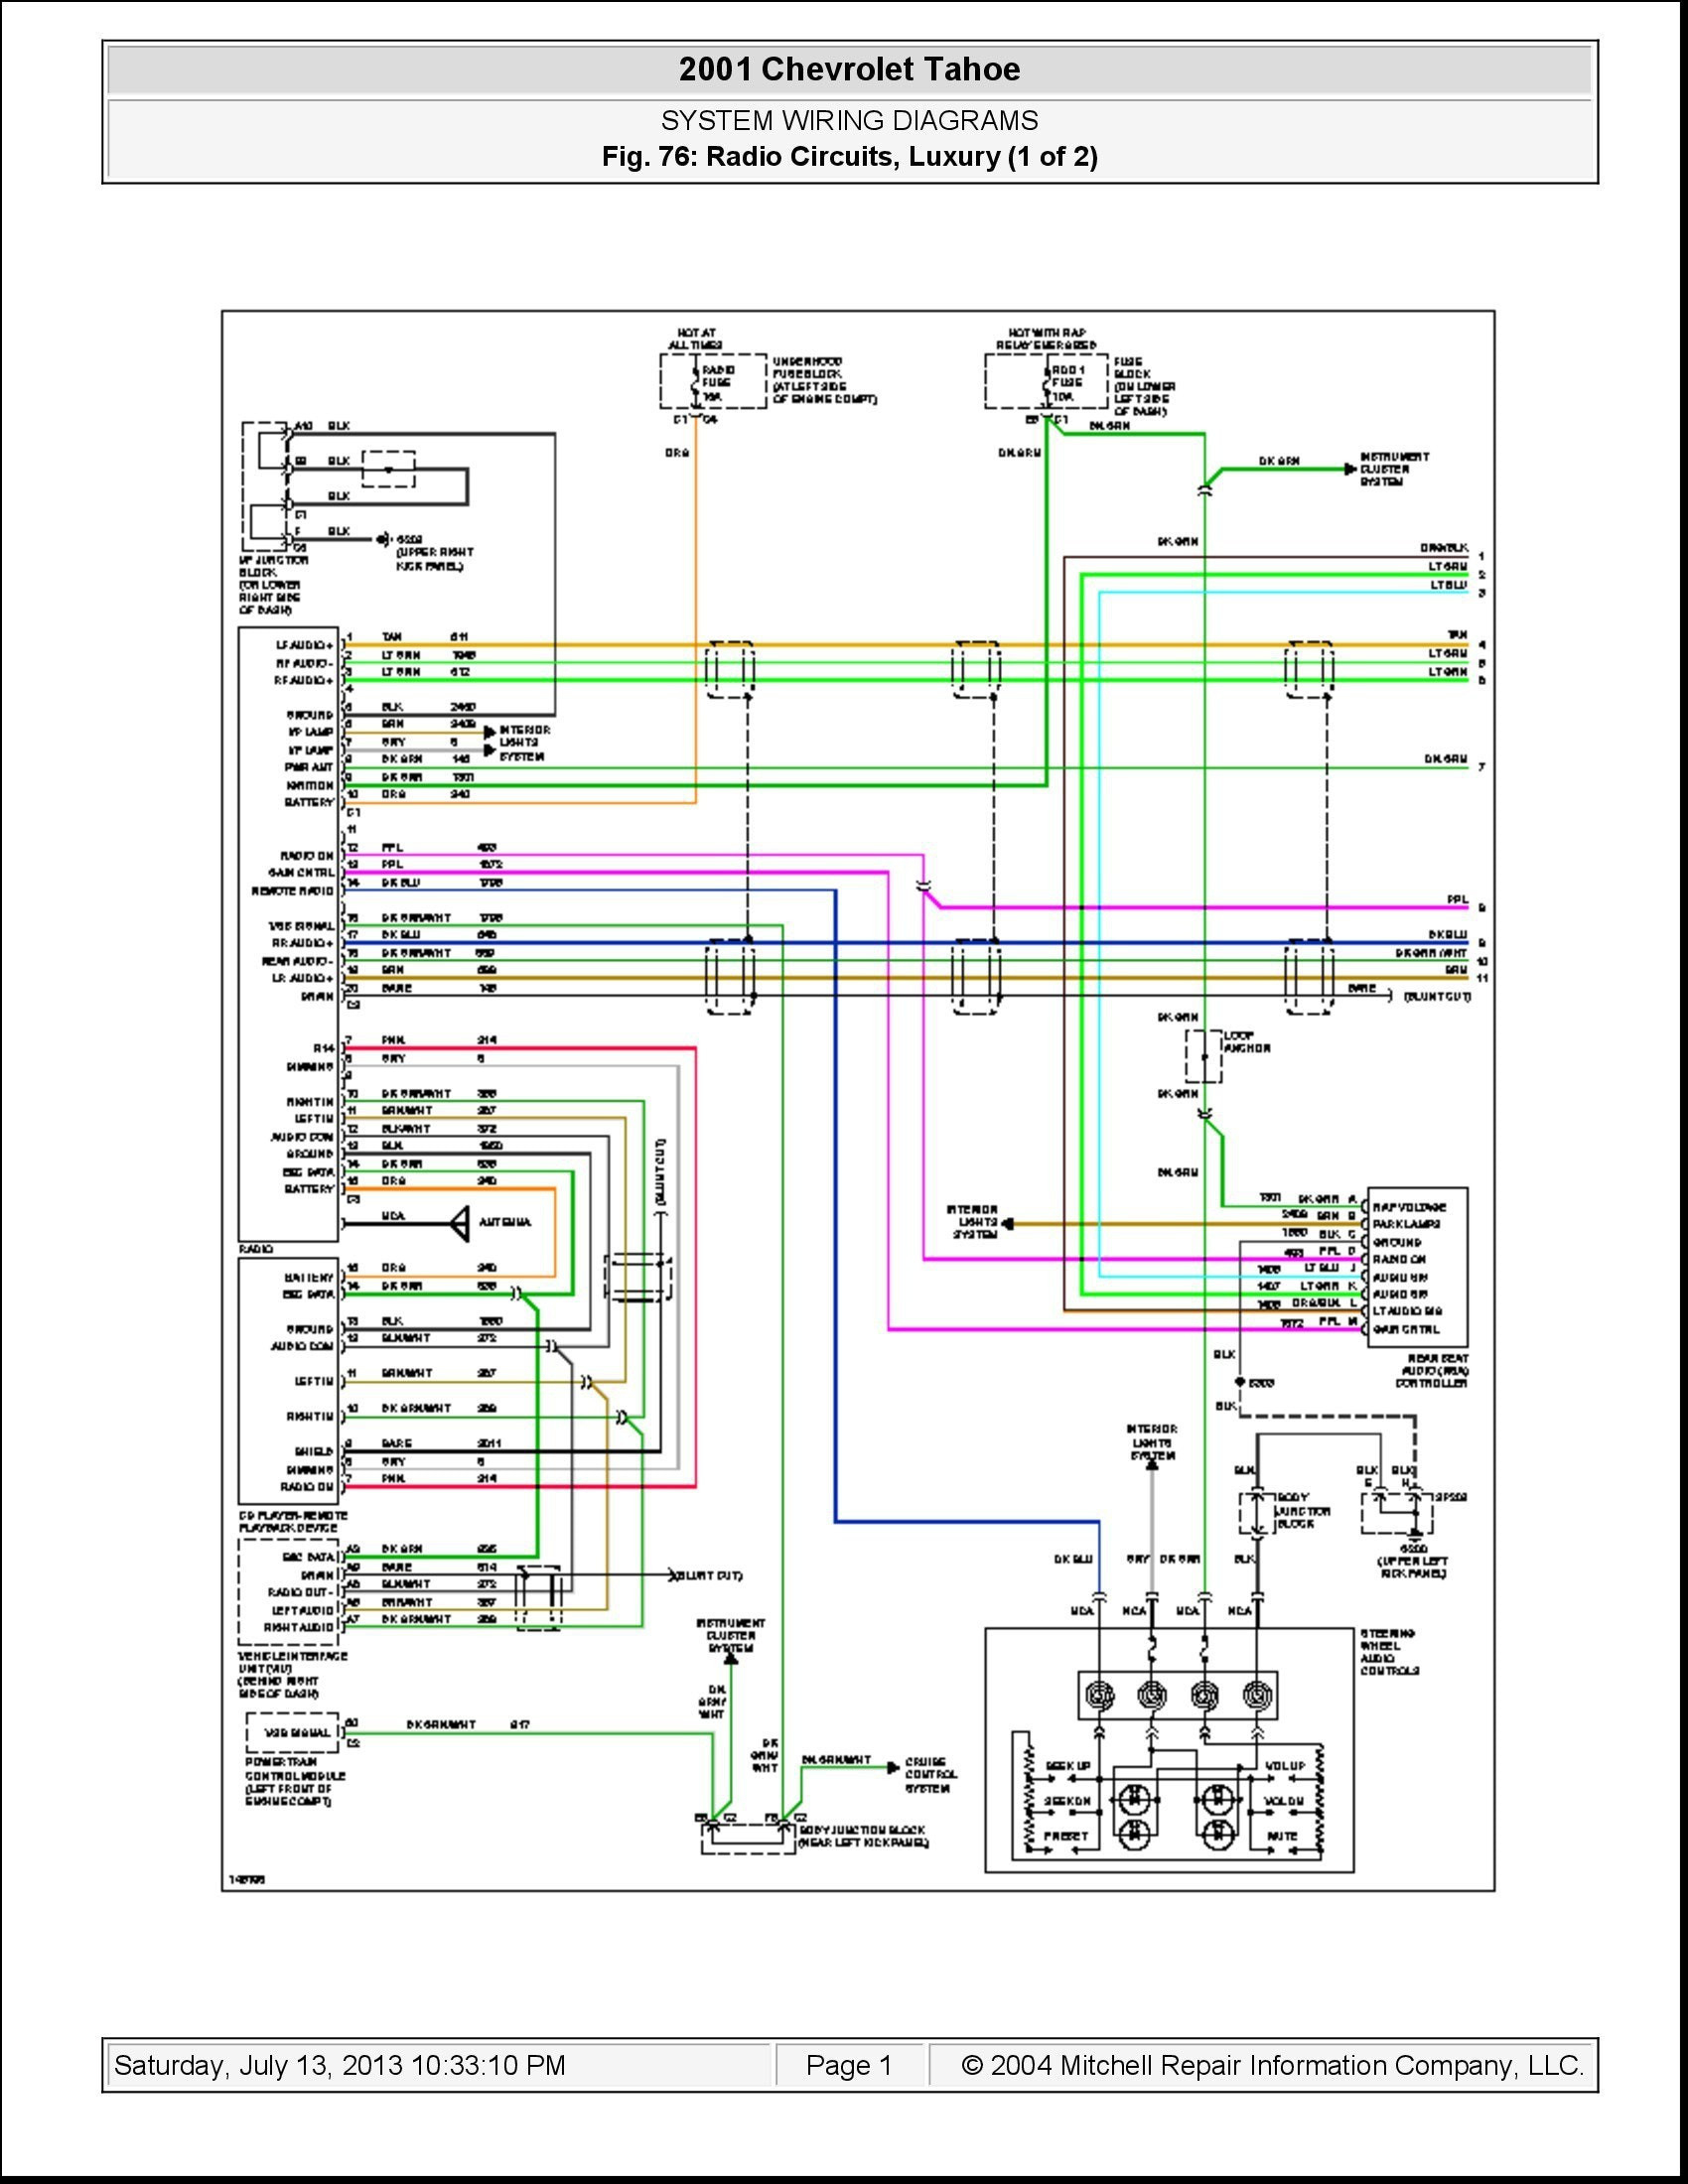 02 Envoy Wiring Harness | Wiring Library - 2004 Chevy Silverado Radio Wiring Harness Diagram